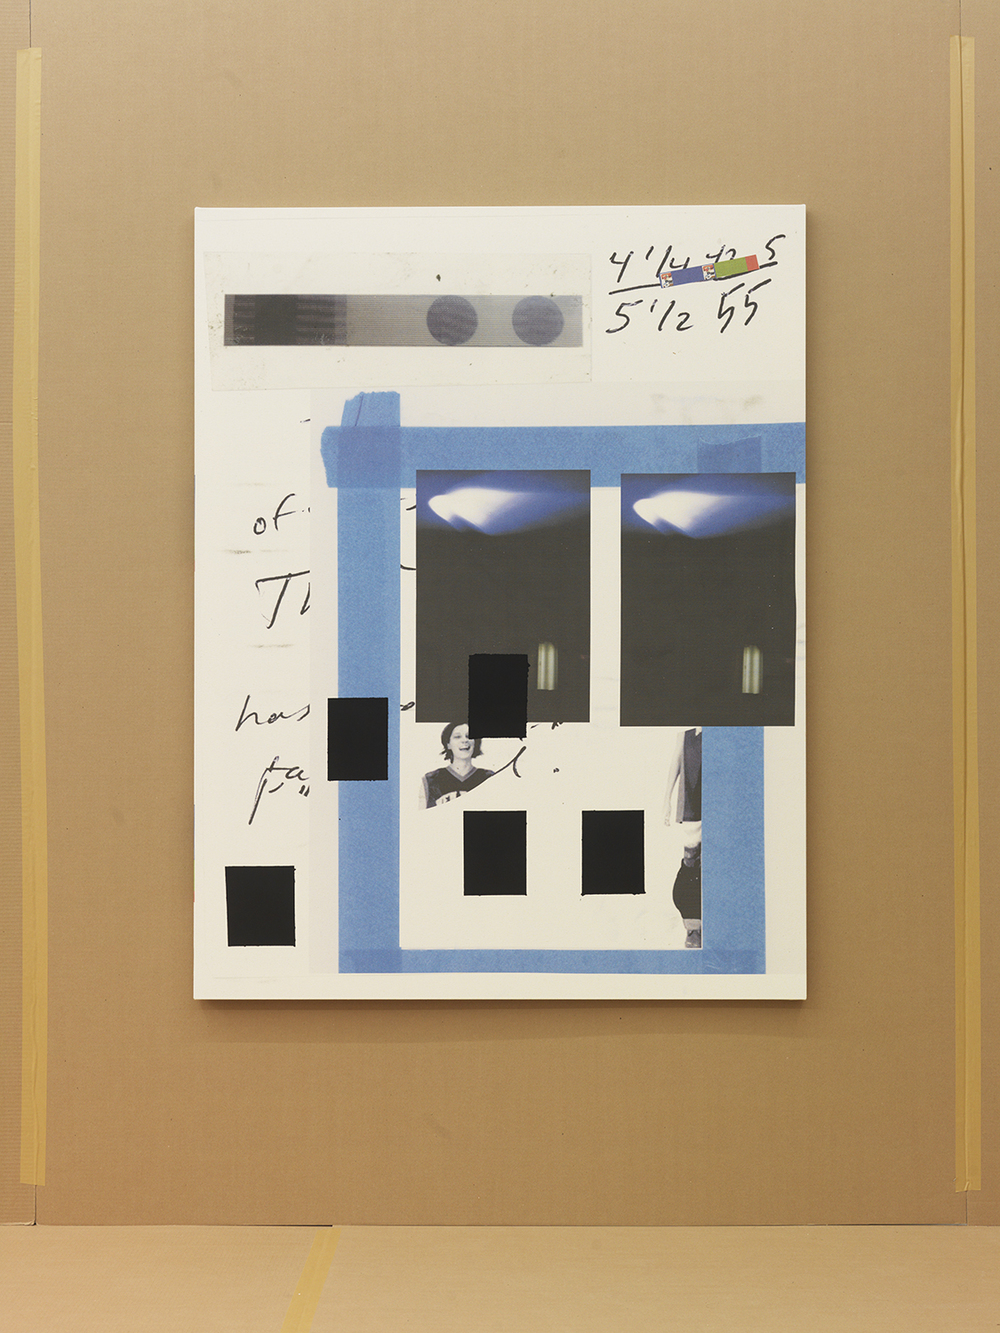 Untitled (Document of Preparation), 2015 Epson UltraChrome inkjet and acrylic ink on canvas 61 x 47 inches